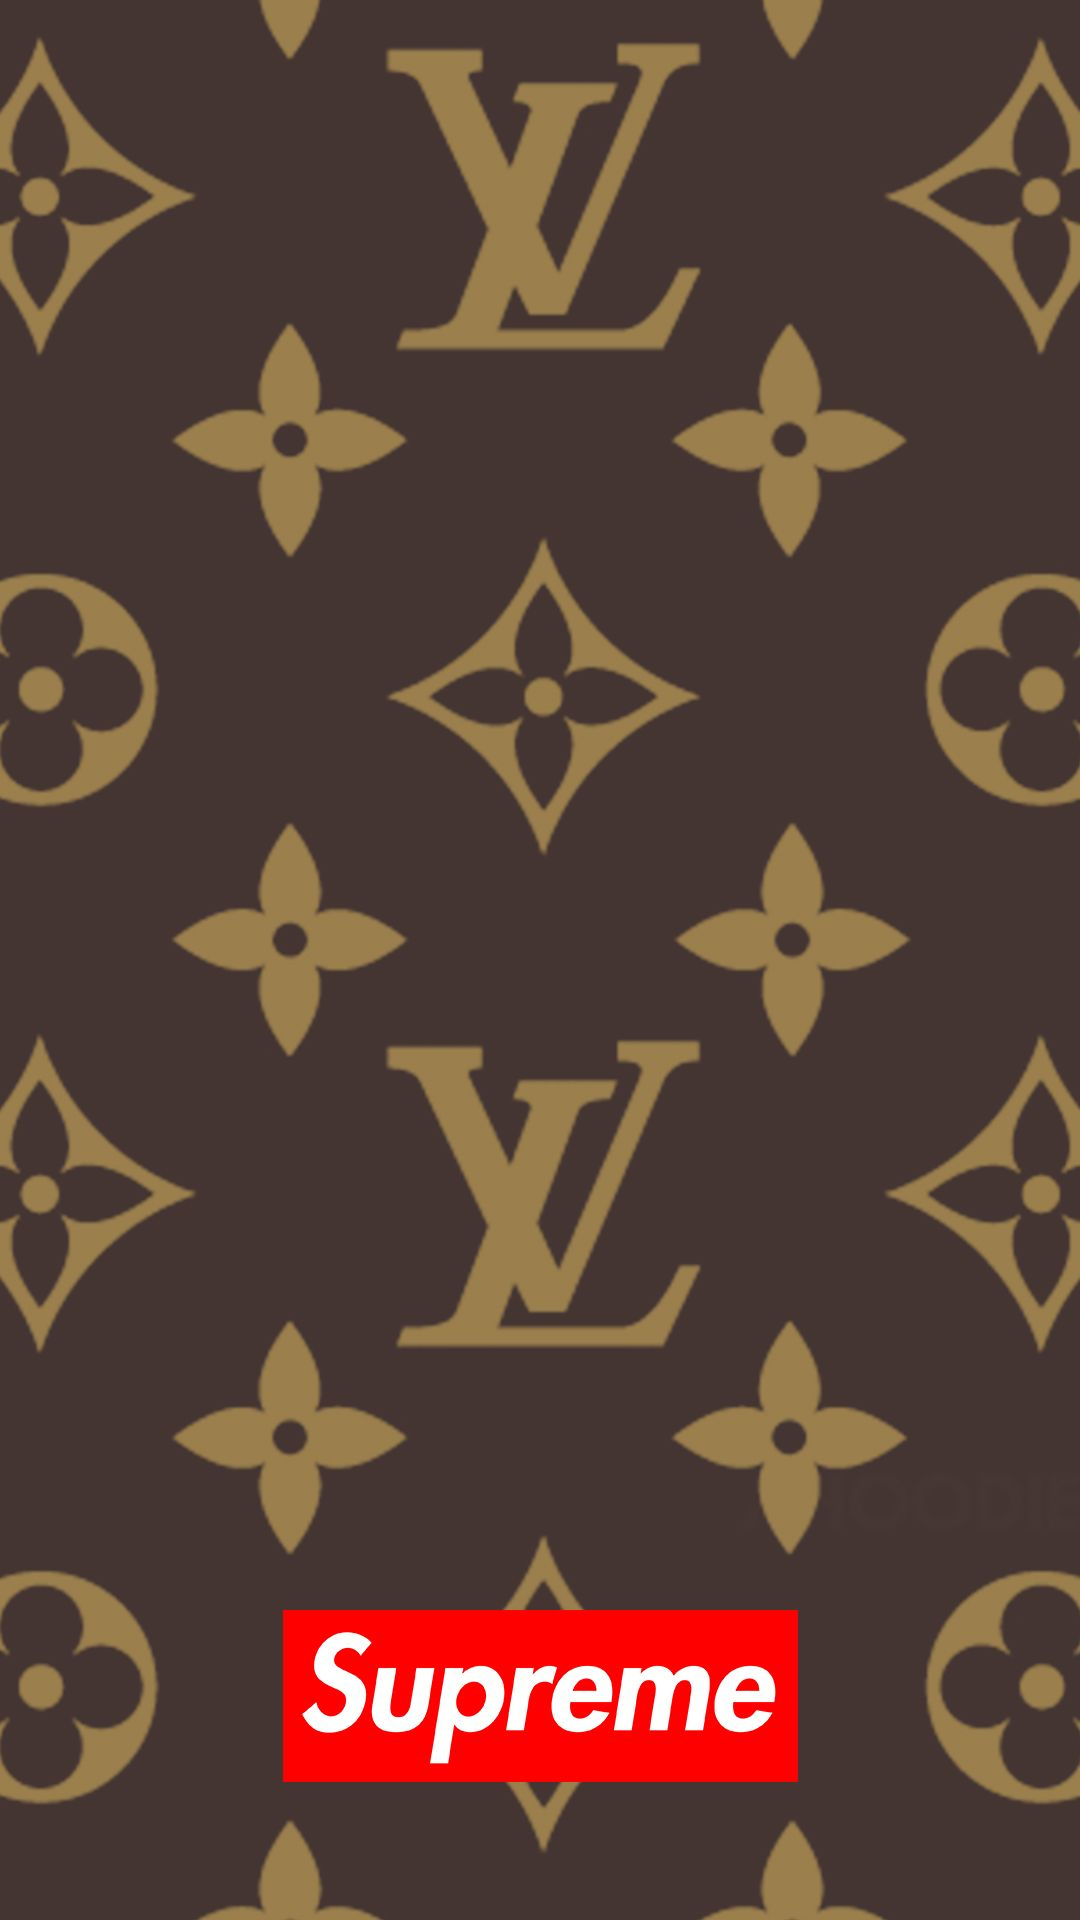 Lv Supreme Yellow Wallpaper Yellow Aesthetic Photo Wall Collage